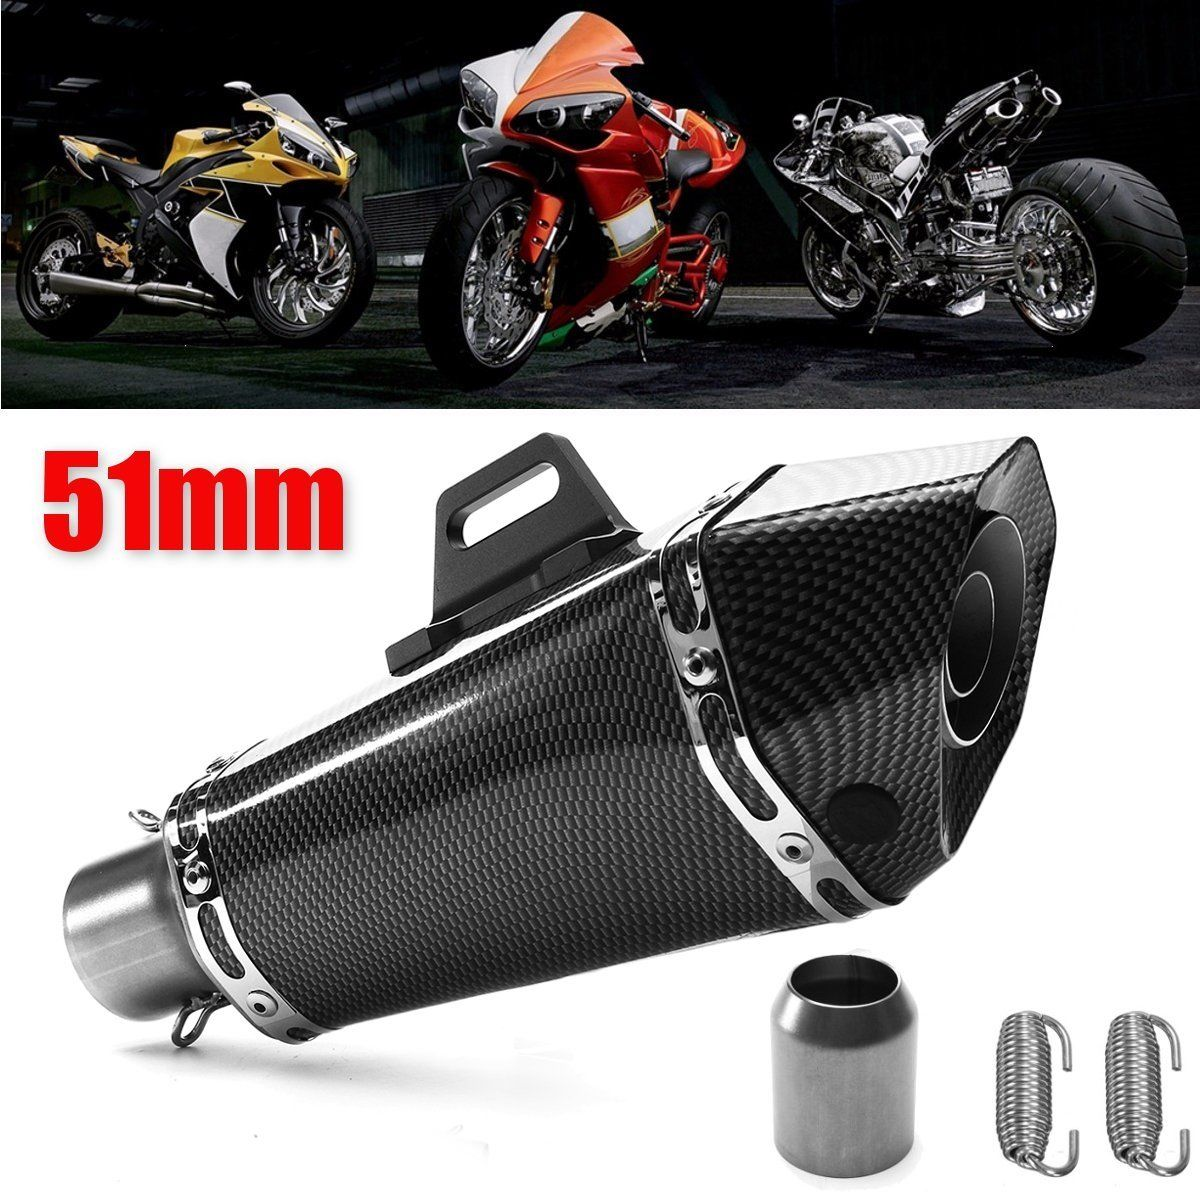 New 36-51mm Motorcycle Aluminum Exhaust Muffler Tip Pipe Carbon Fiber Style Muffler Pipe for Yamaha YZF R1 yandex w205 amg style carbon fiber rear spoiler for benz w205 c200 c250 c300 c350 4door 2015 2016 2017